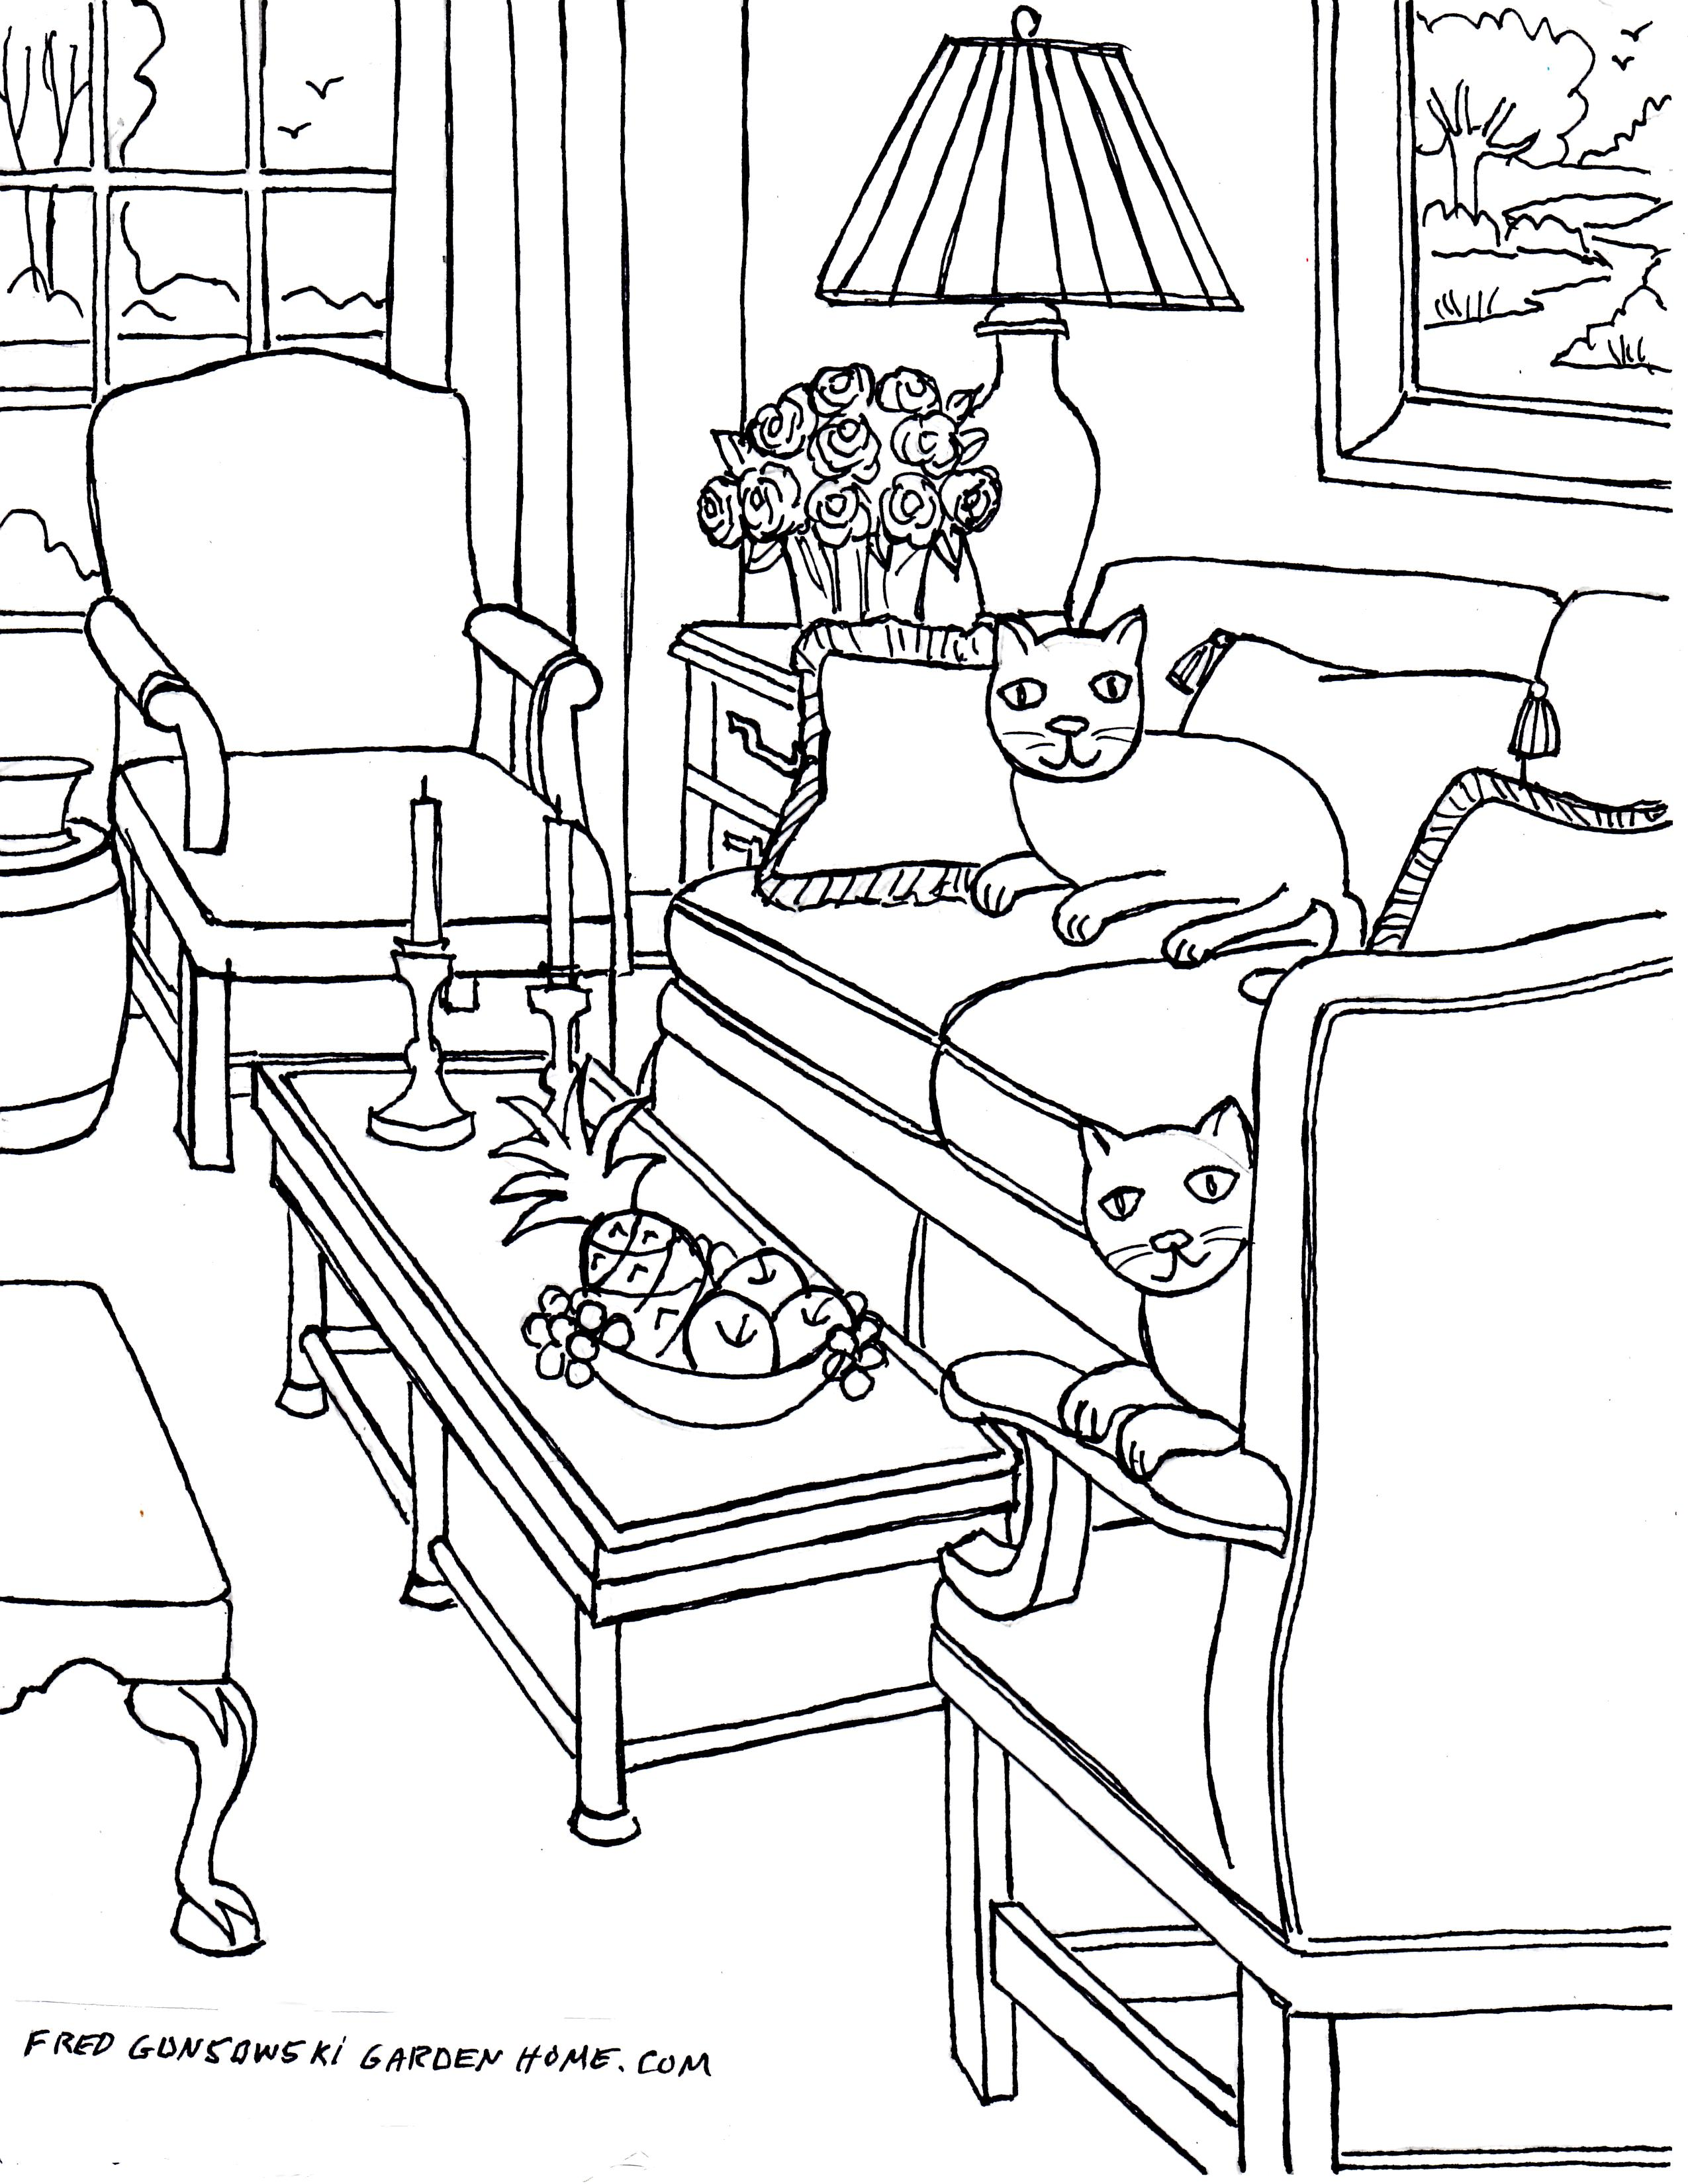 Drawn chair coloring page Some  Drawings pages img398